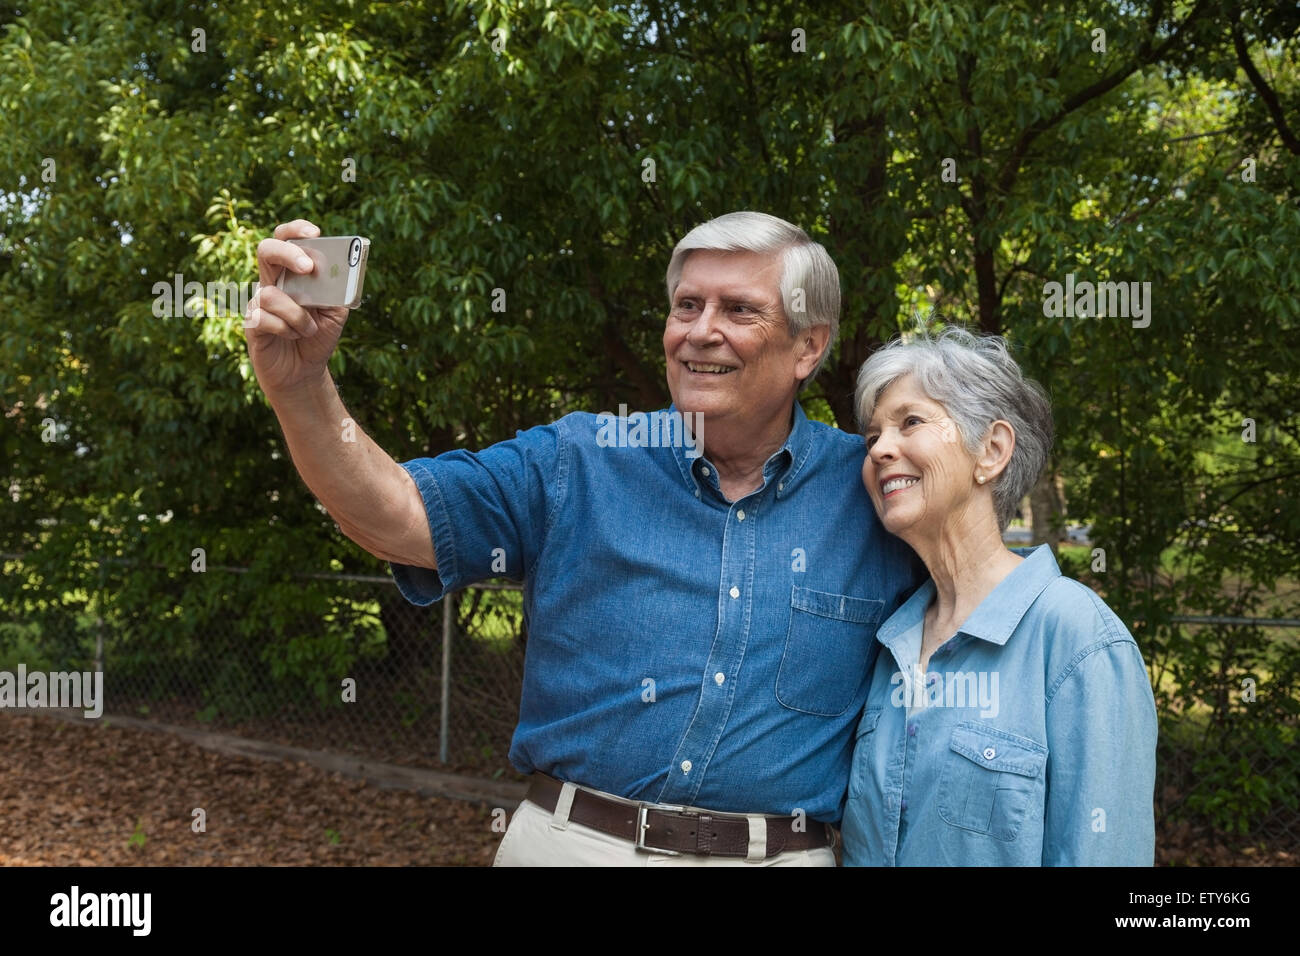 Senior Couple taking a 'Selfie' with Smartphone. - Stock Image